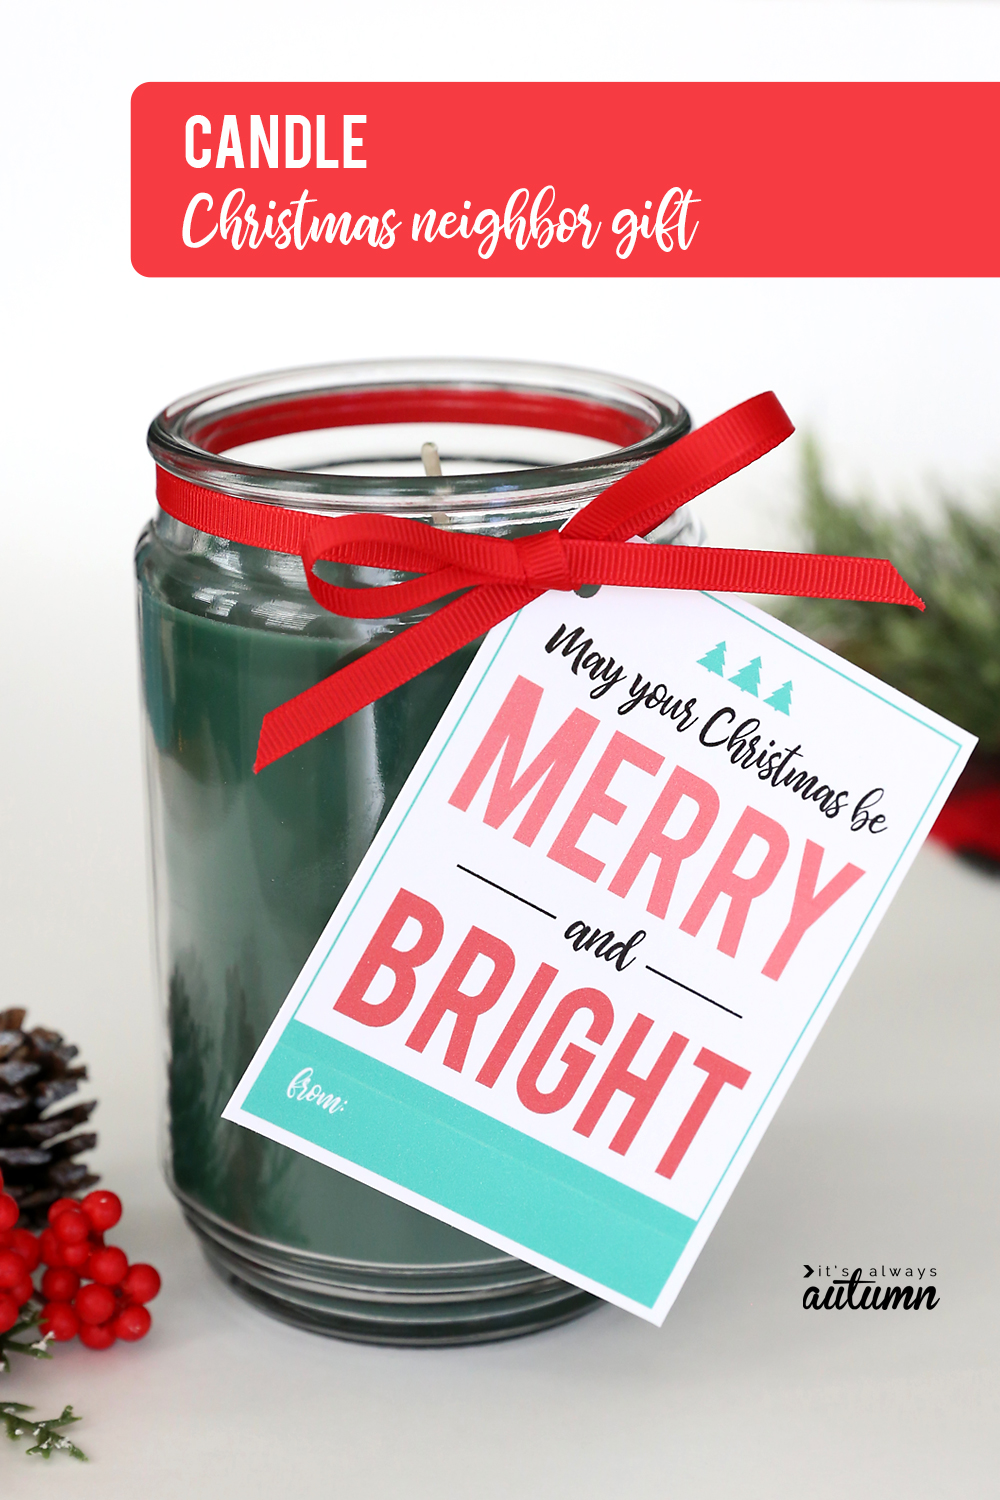 17 Super Easy Christmas Neighbor Gifts W Printable Tags It S Always Autumn